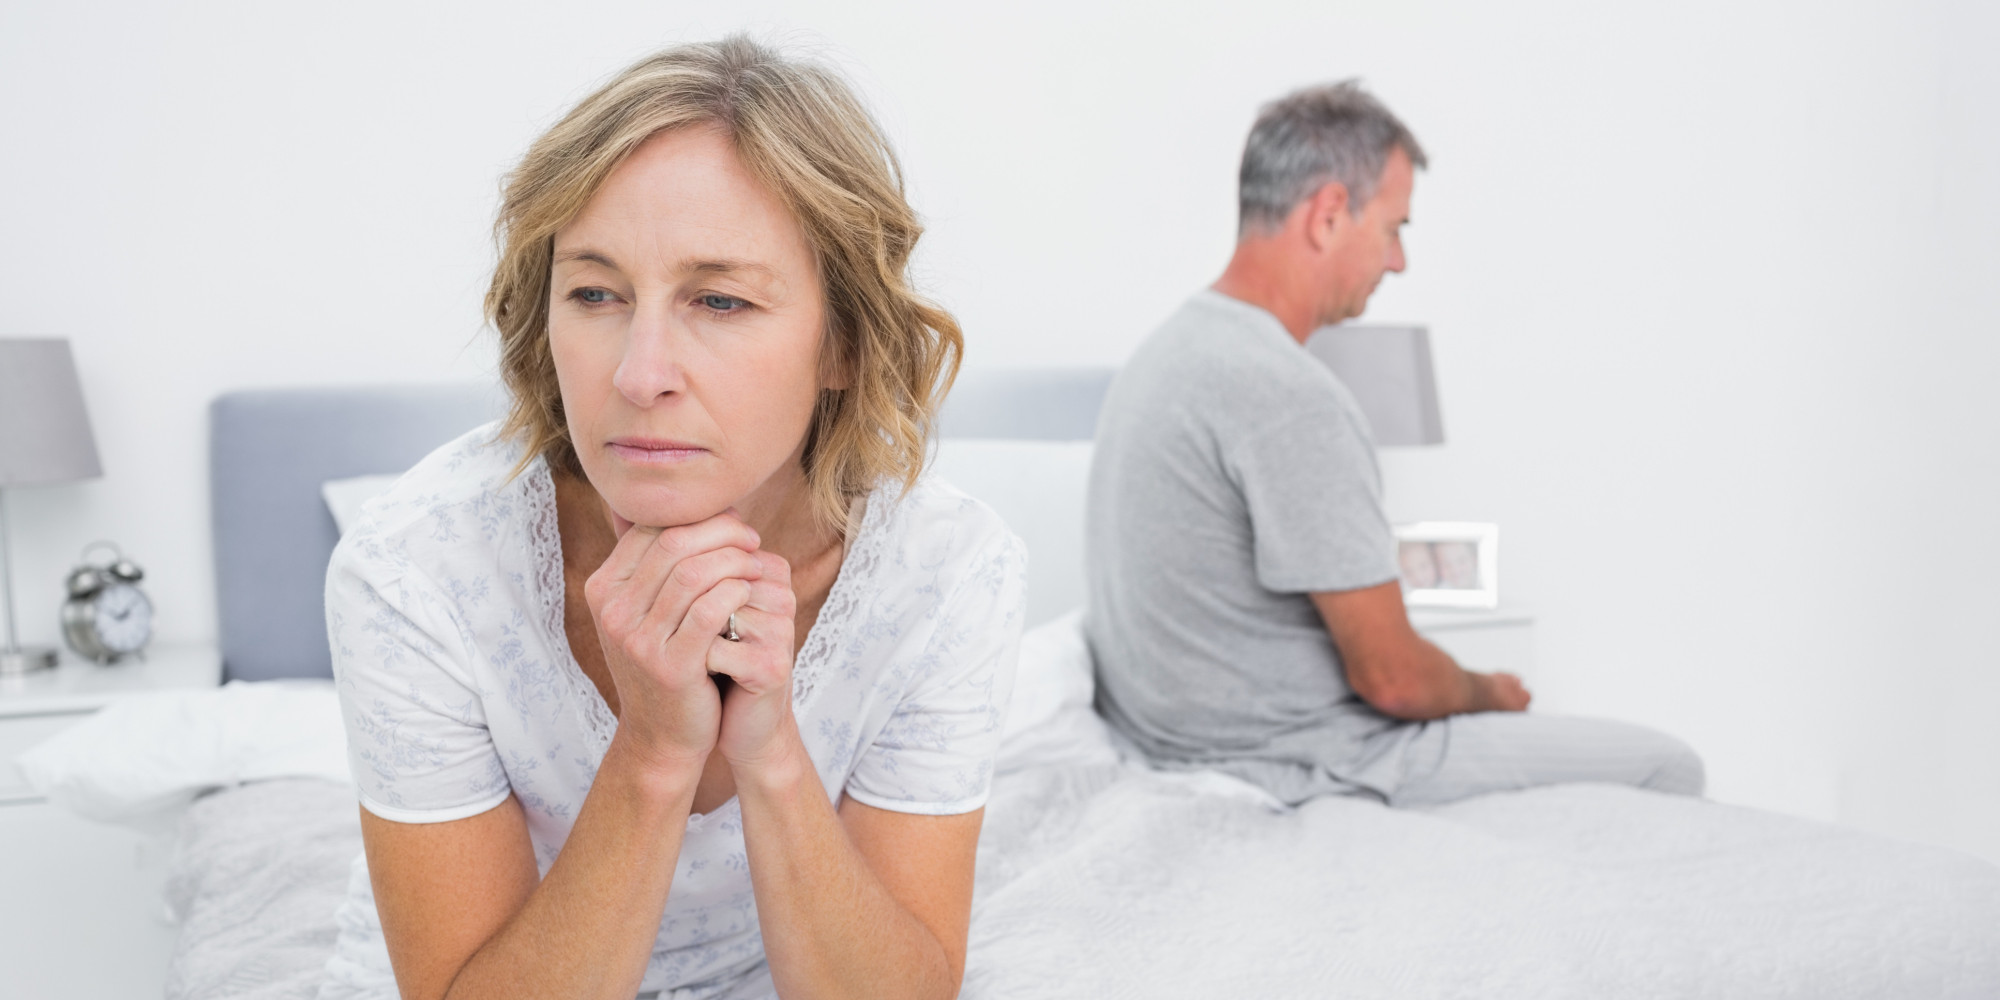 Unhappy couple over 40 sitting on different sides of bed having a dispute